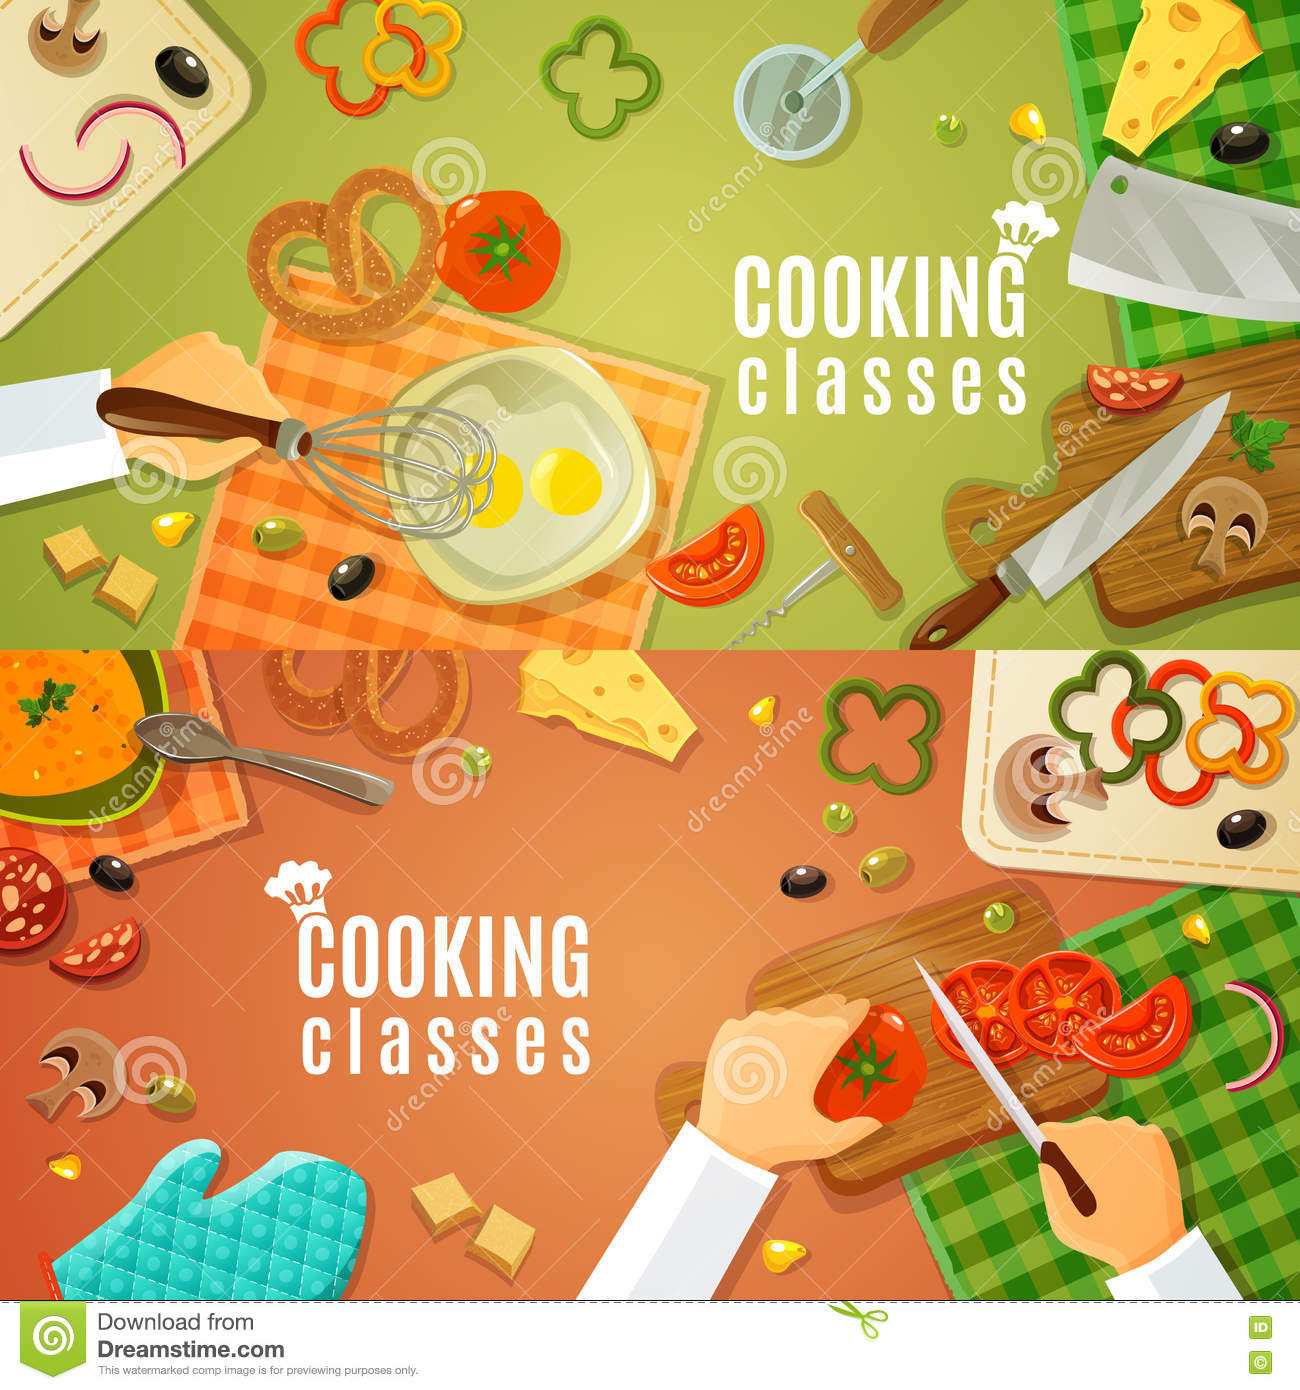 cooking classes top view kitchenware products kitchen table chefs hands chopping vegetables wooden board vector 73054613